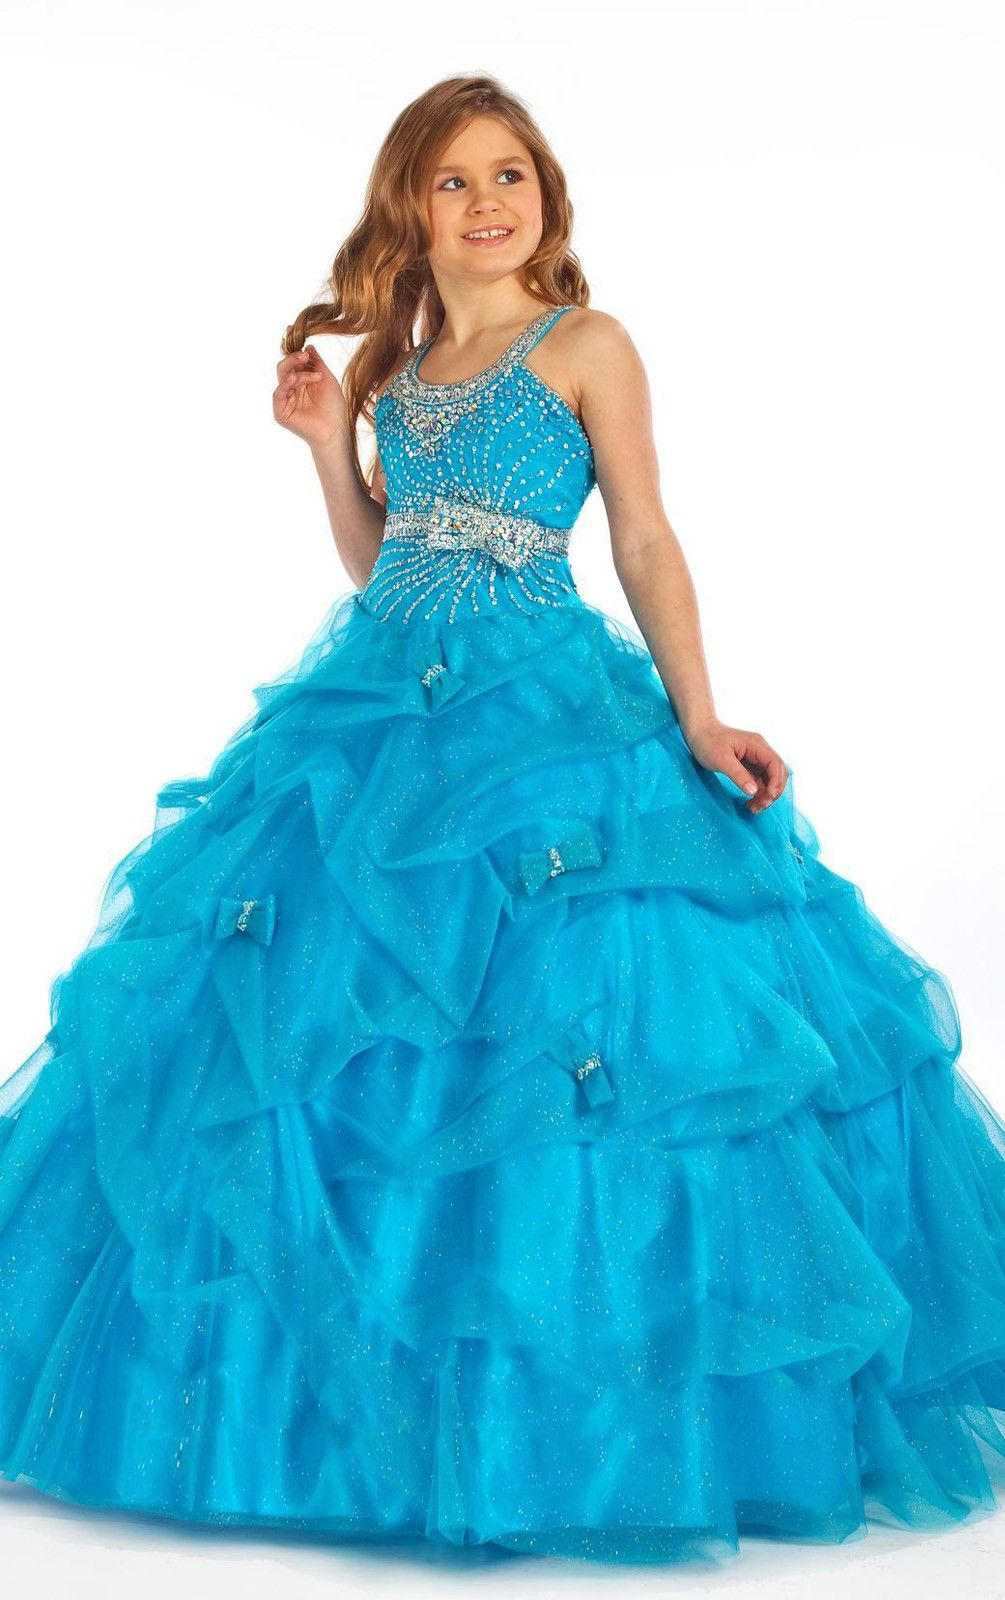 17 Best images about ball gowns on Pinterest | Strapless organza ...